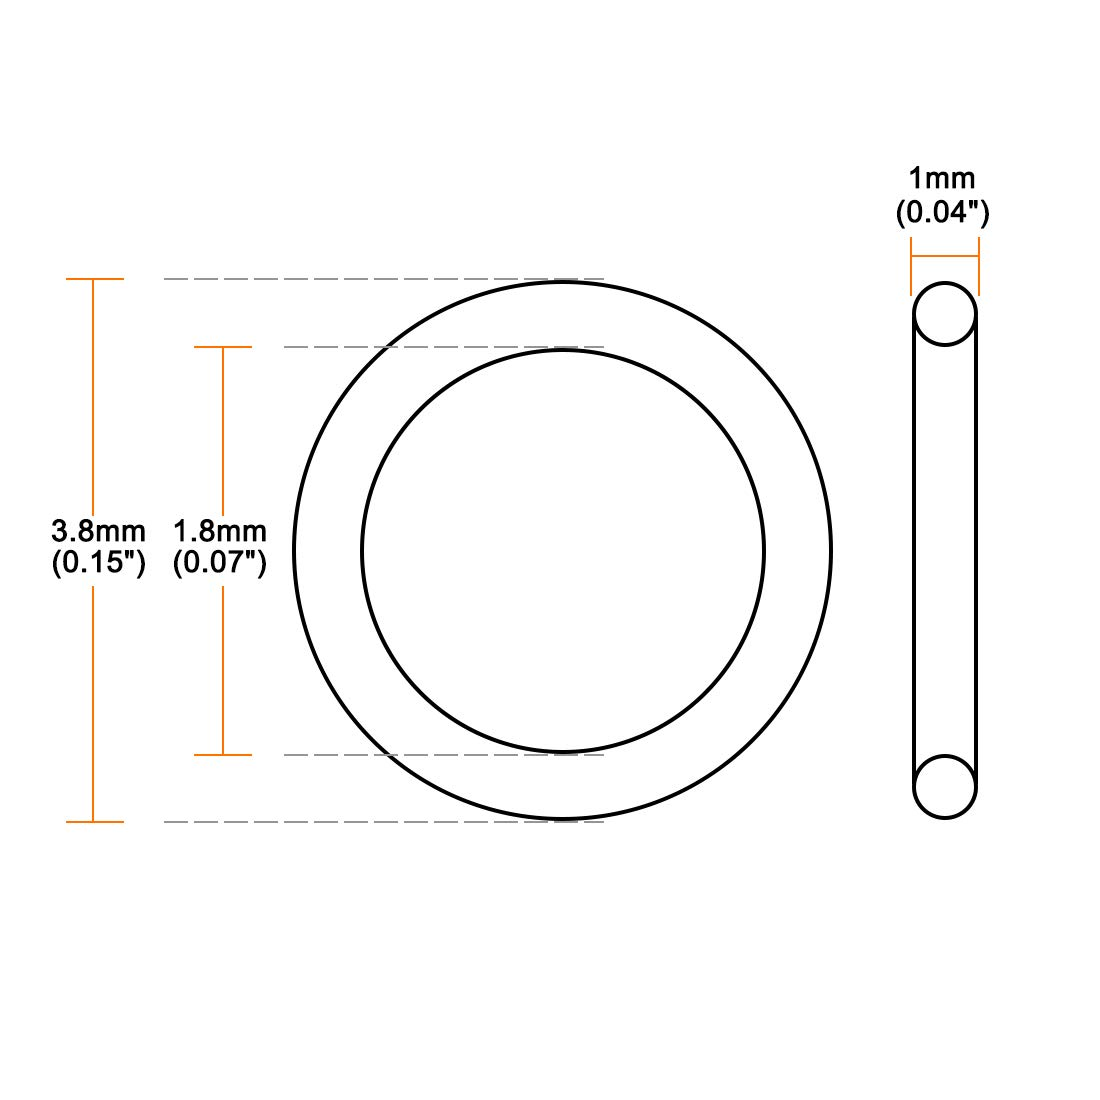 uxcell O-Rings Nitrile Rubber 1.2mm Inner Diameter 3.2mm OD 1mm Width Round Seal Gasket 50 Pcs